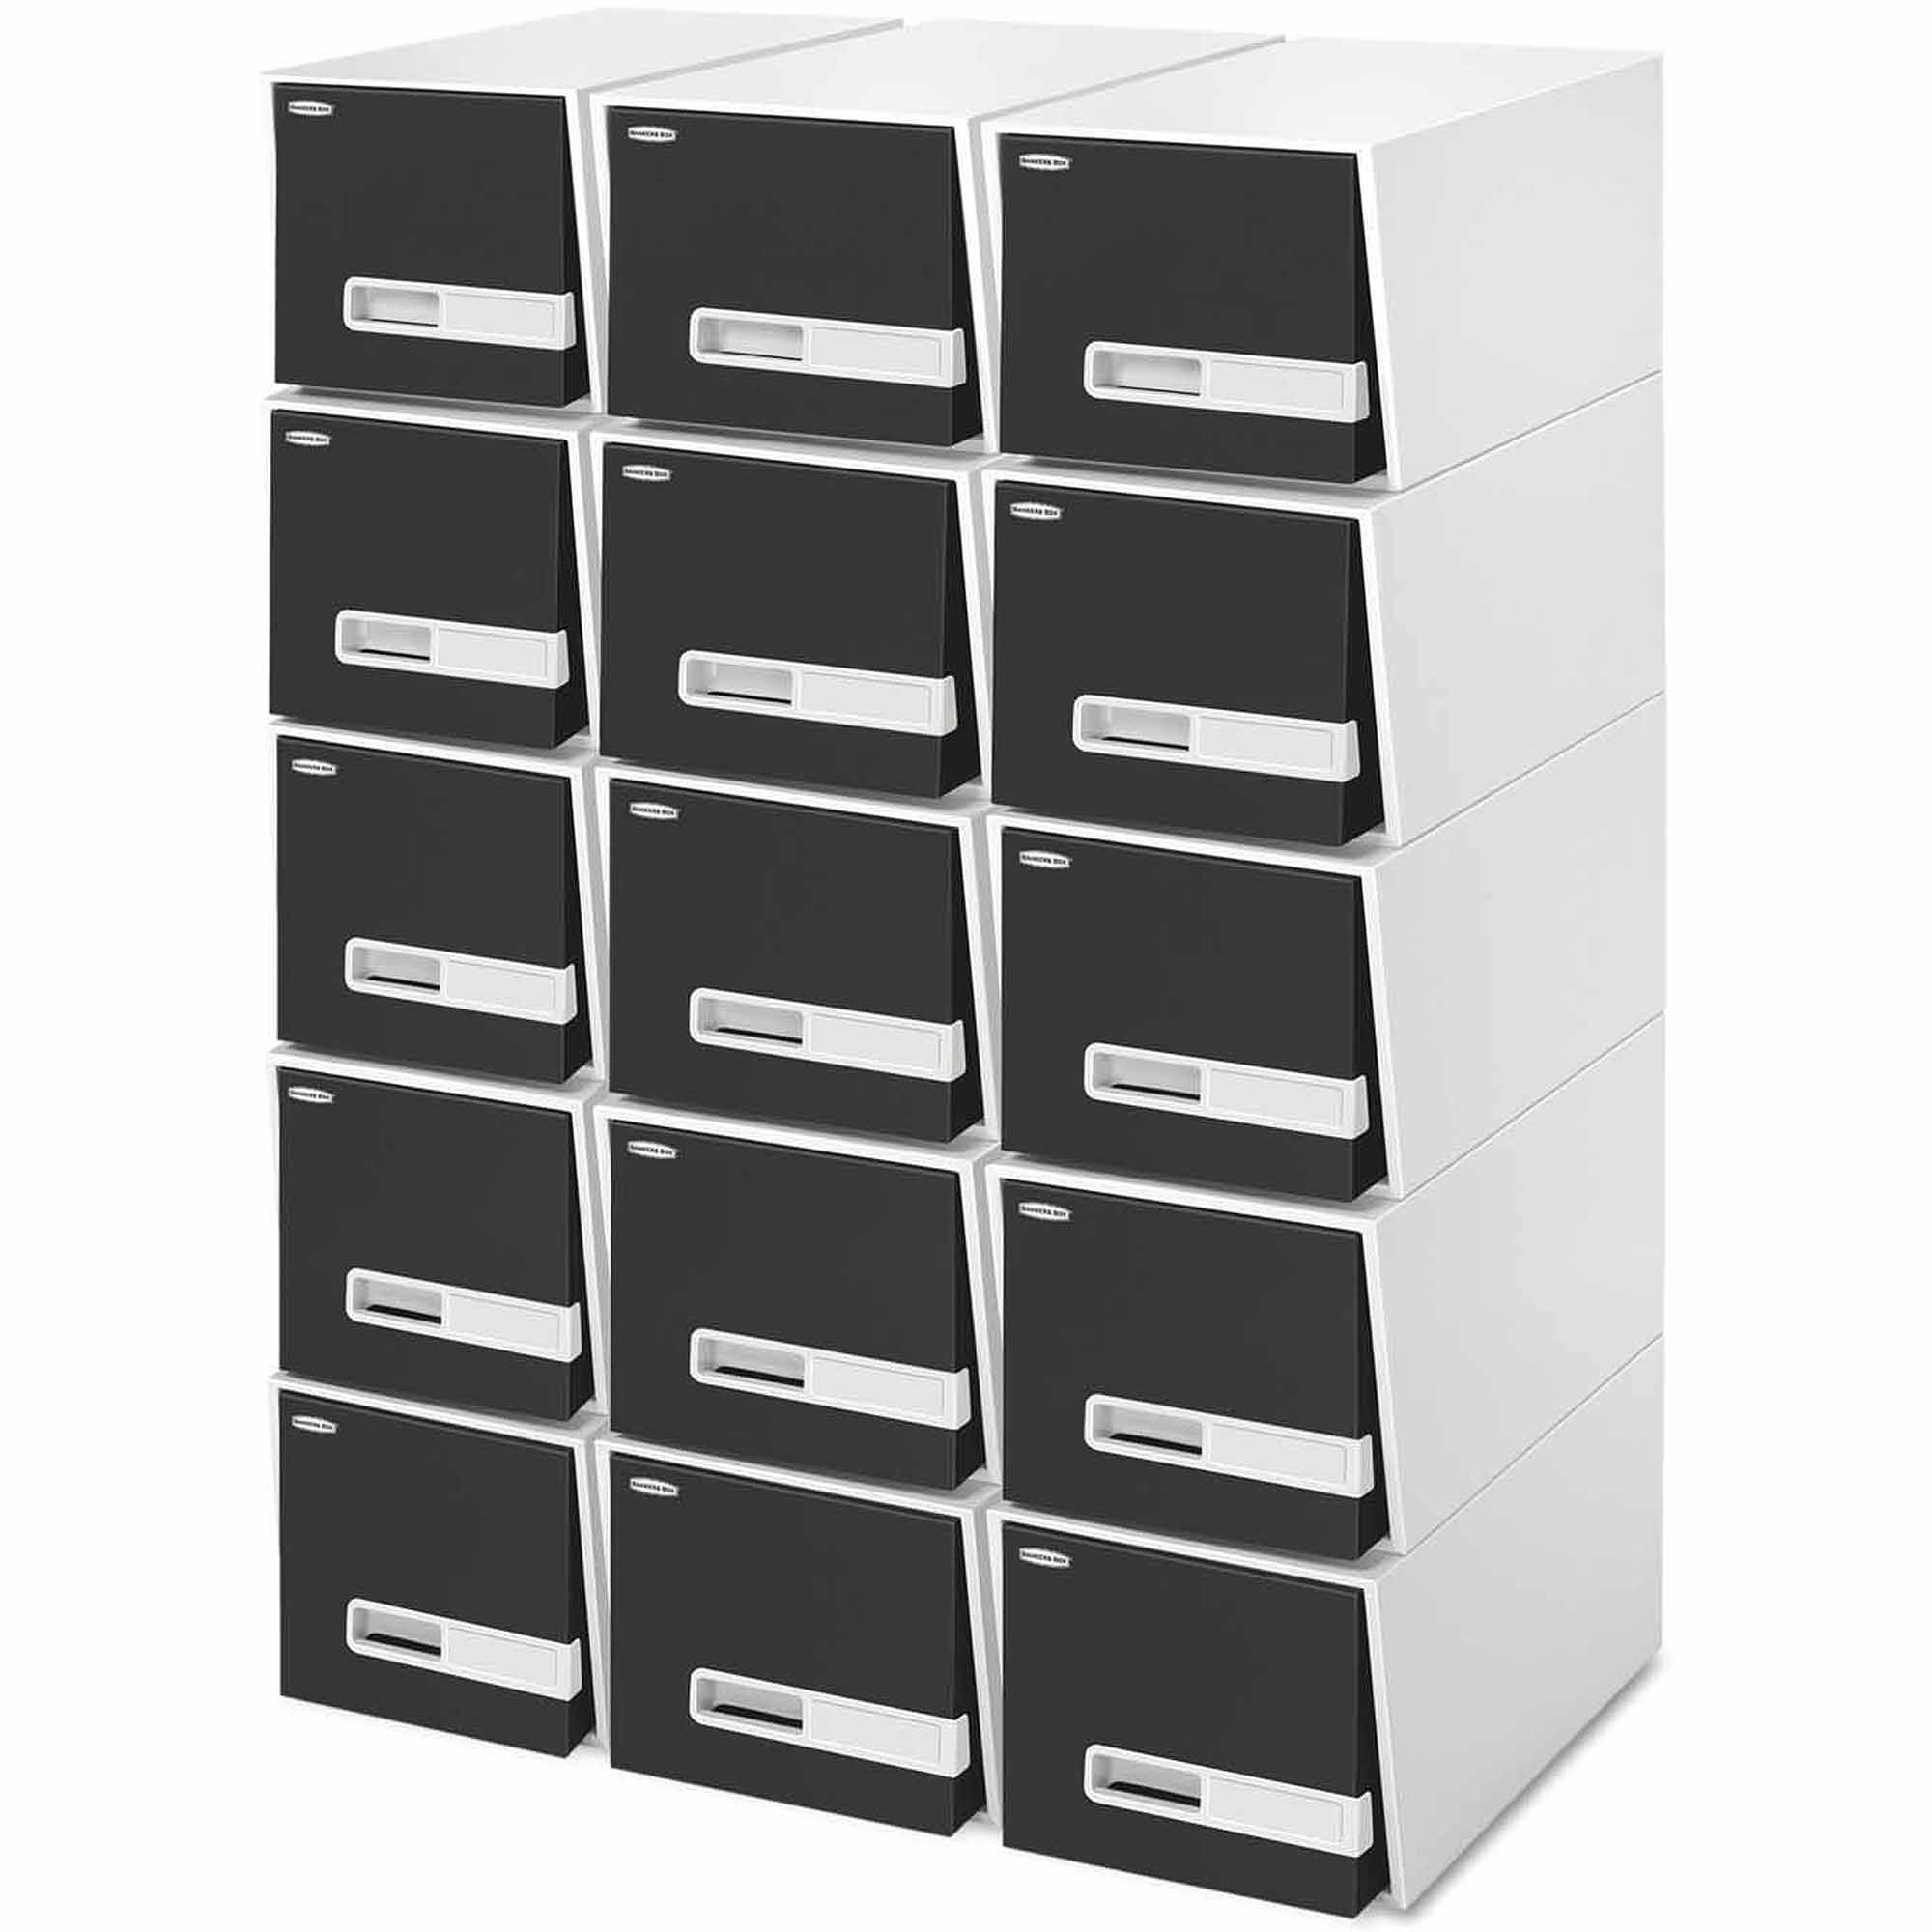 """Bankers Box Stor/Drawer Premier Extra Space Savings Storage Drawers, 24""""Legal, Black, 5-Count"""